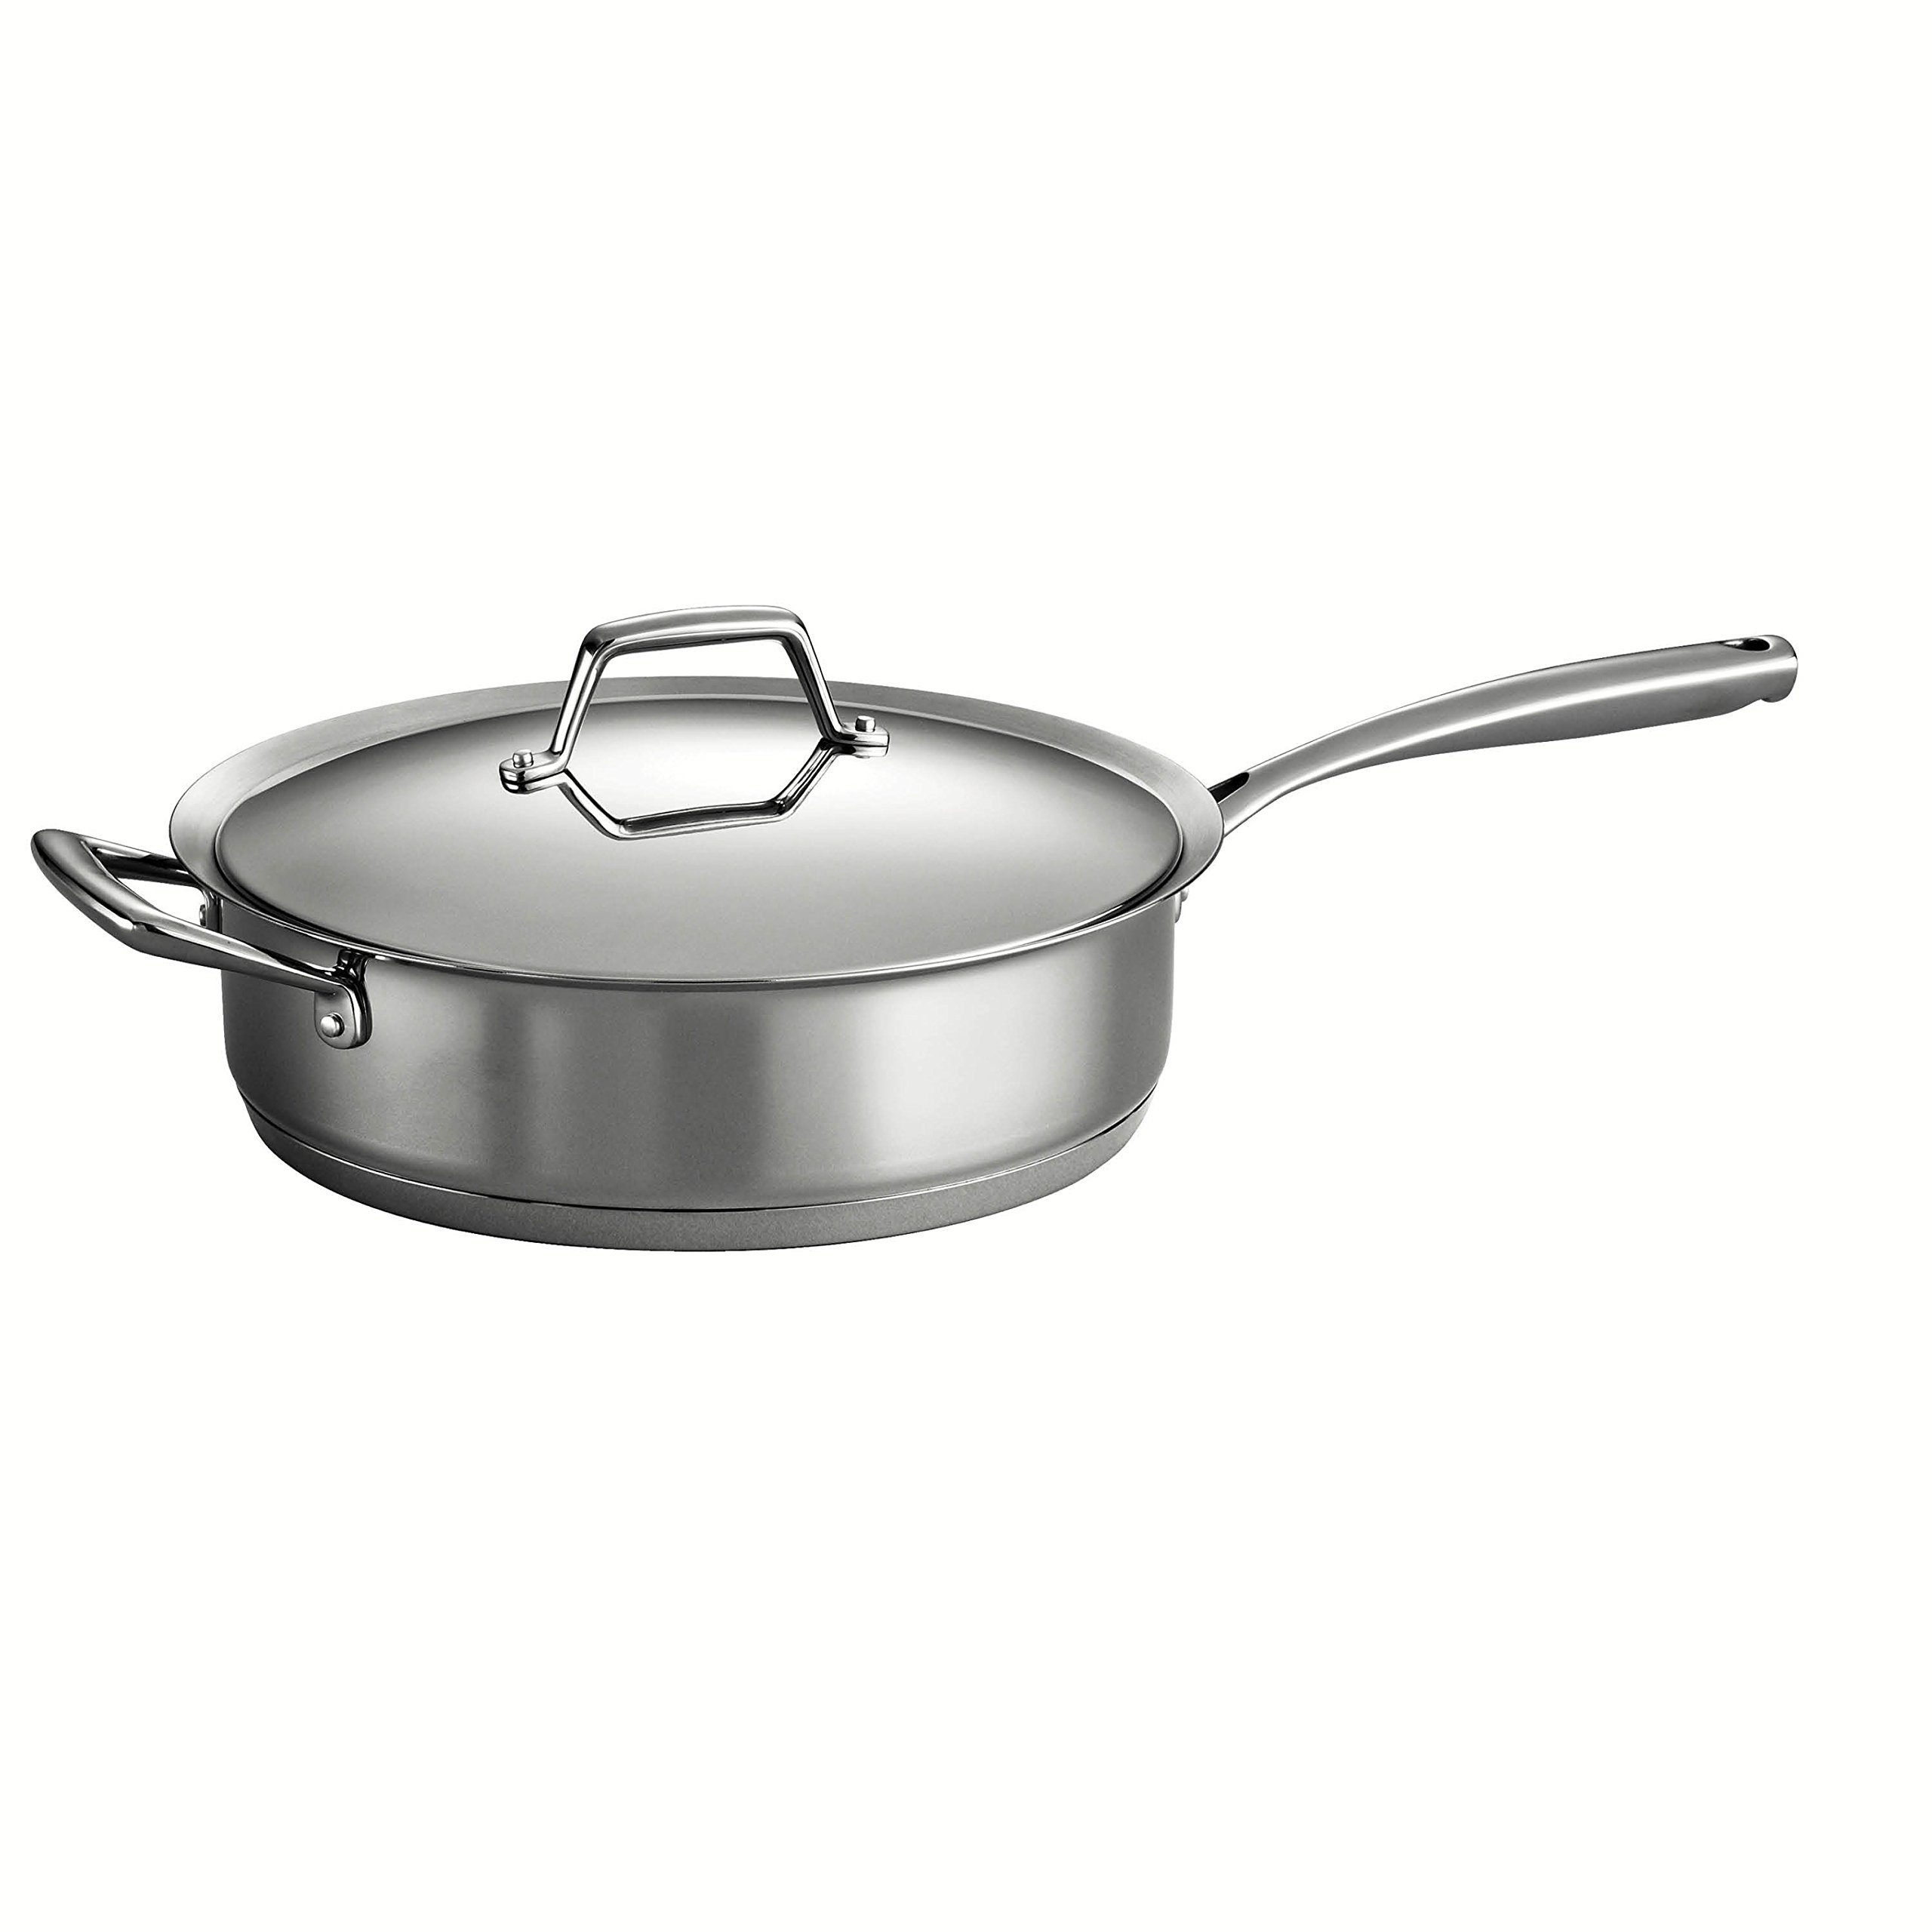 Tramontina Gourmet Prima 18/10 Stainless Steel Tri-Ply Base 5-Quart Covered Deep Saute Pan